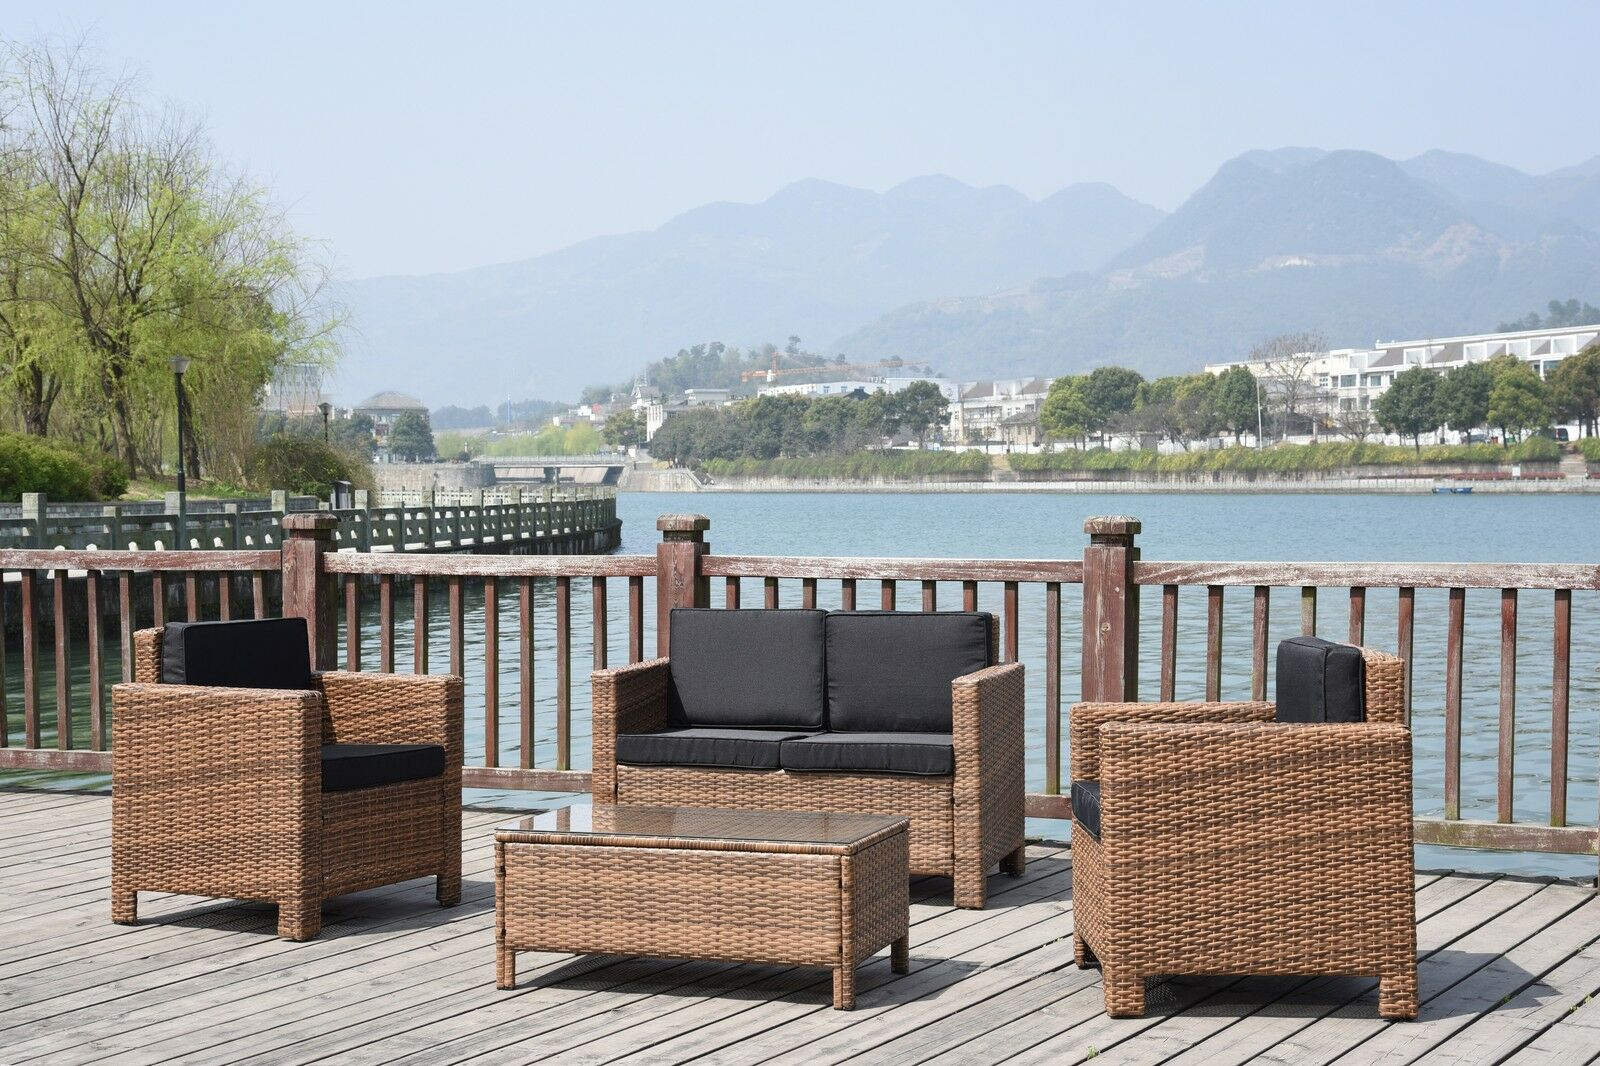 Rattan Twin Sofa Details About New Twin Sofa Single Rattan Wicker Conservatory Outdoor Garden Furniture Set